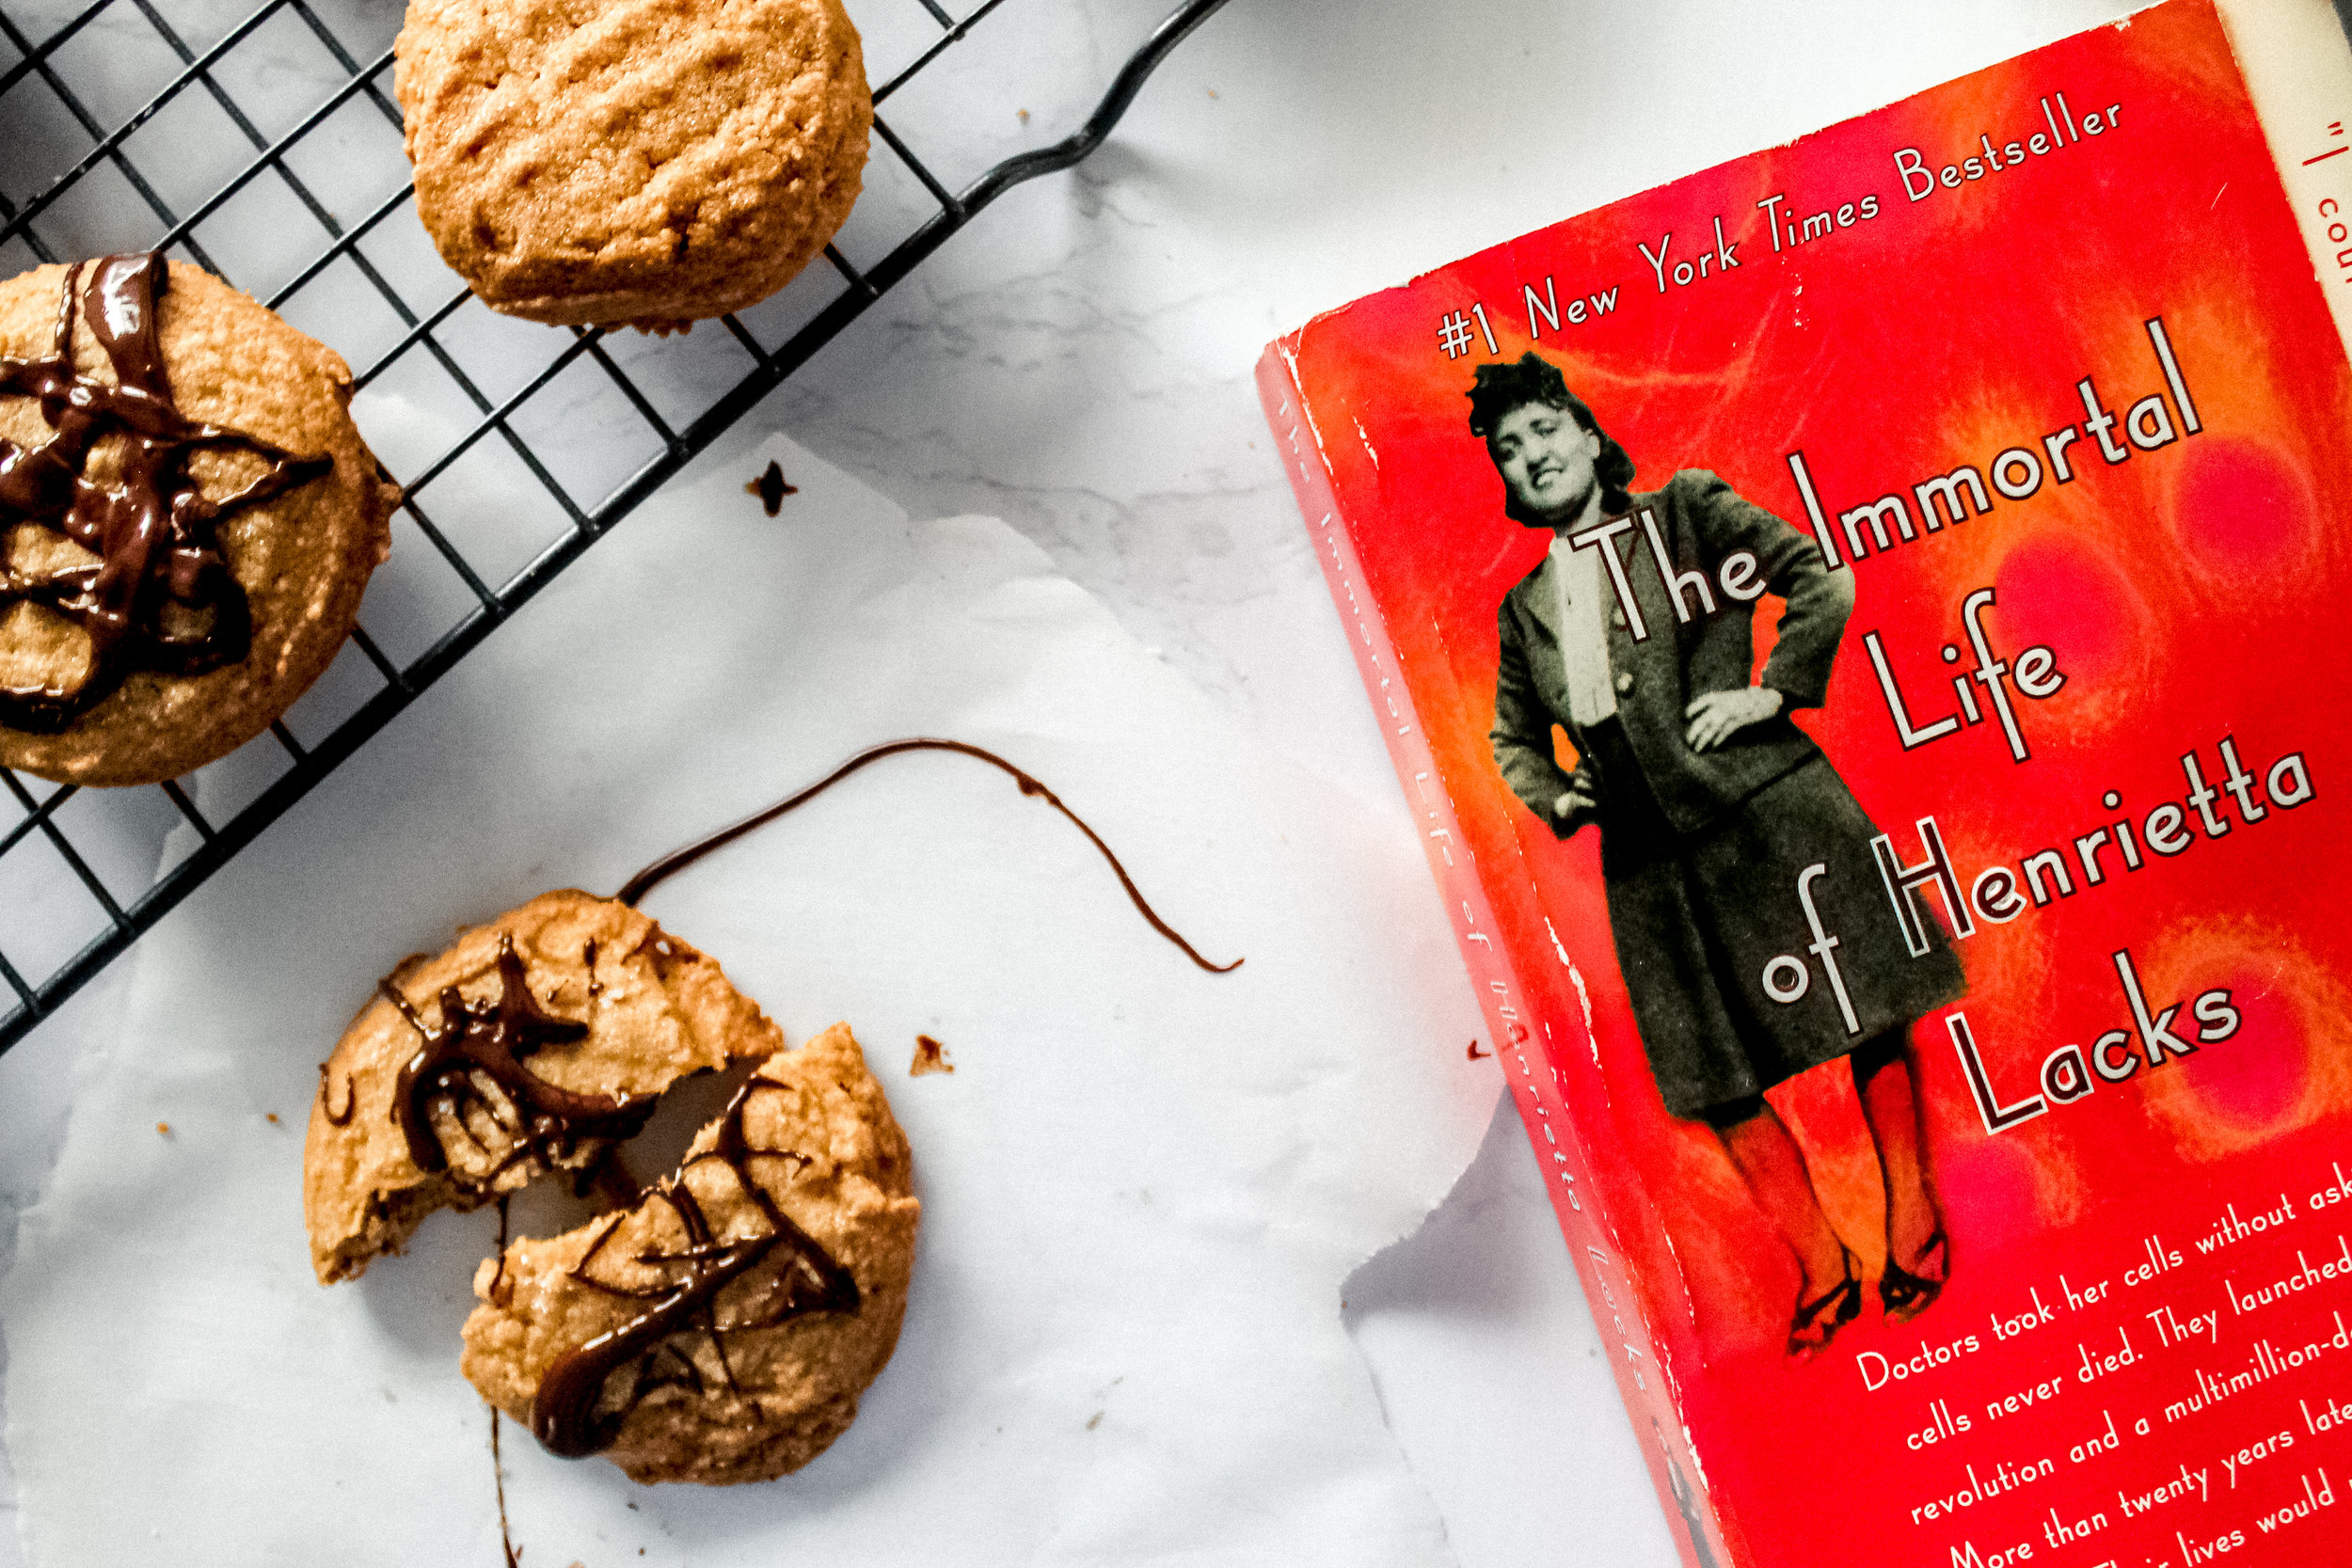 The Immortal Life of Henrietta Lacks and peanut butter cookies